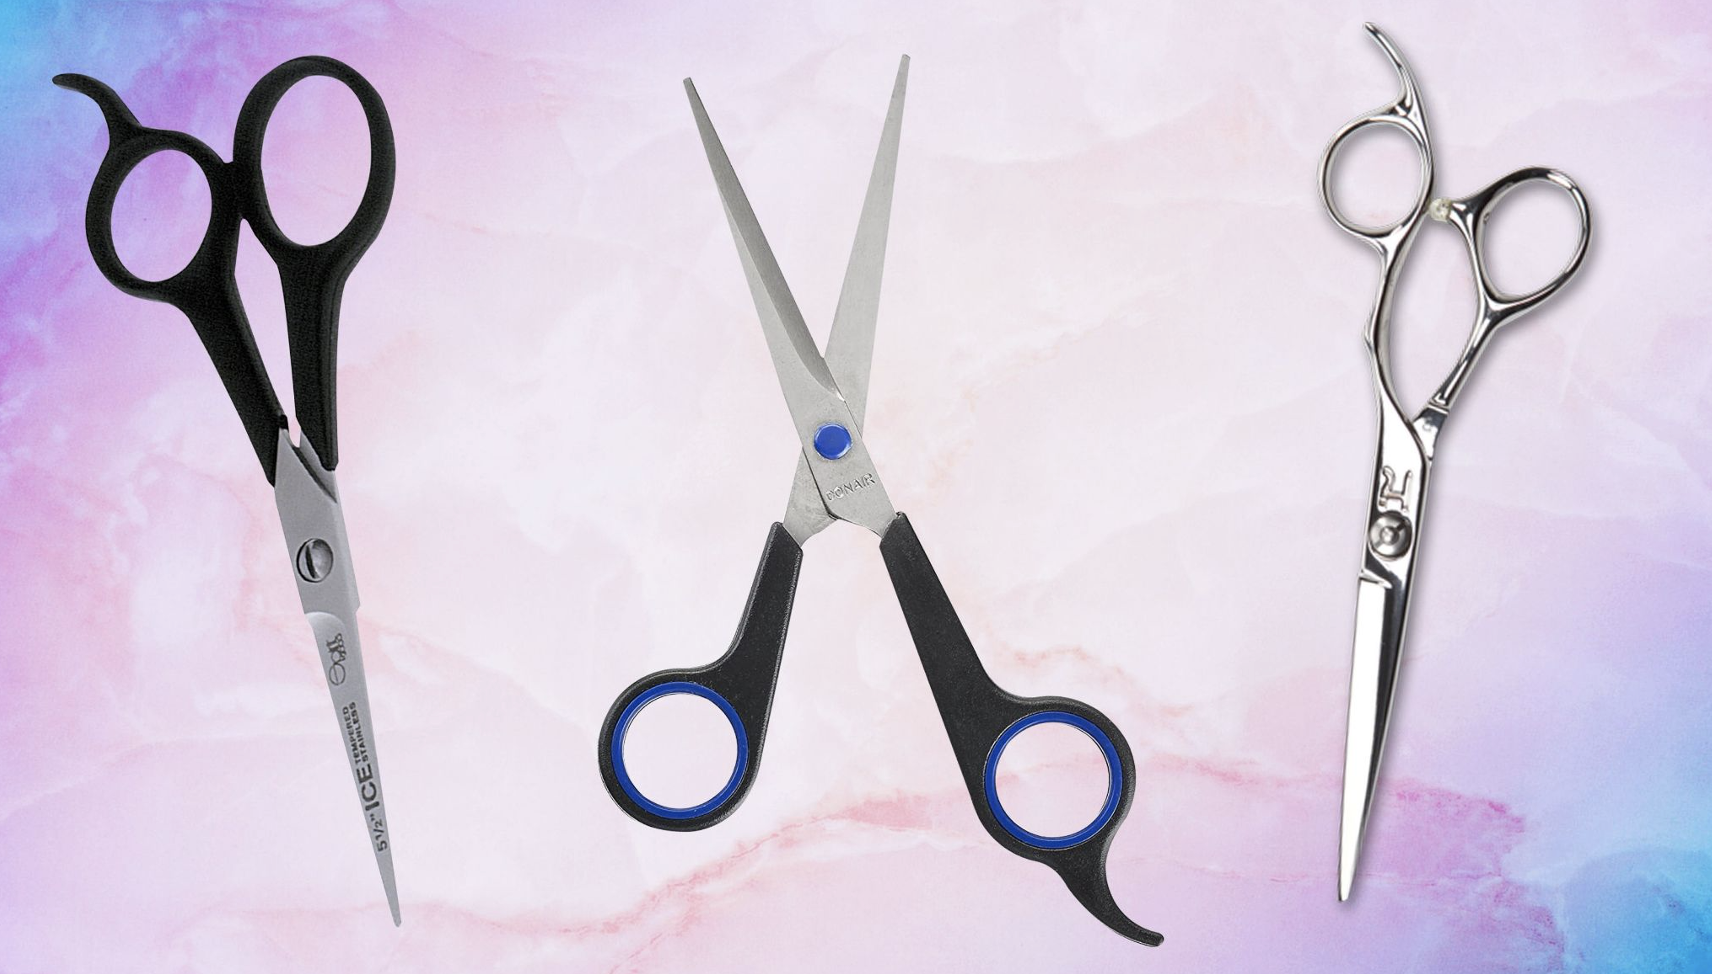 Image of scissors for cutting hair